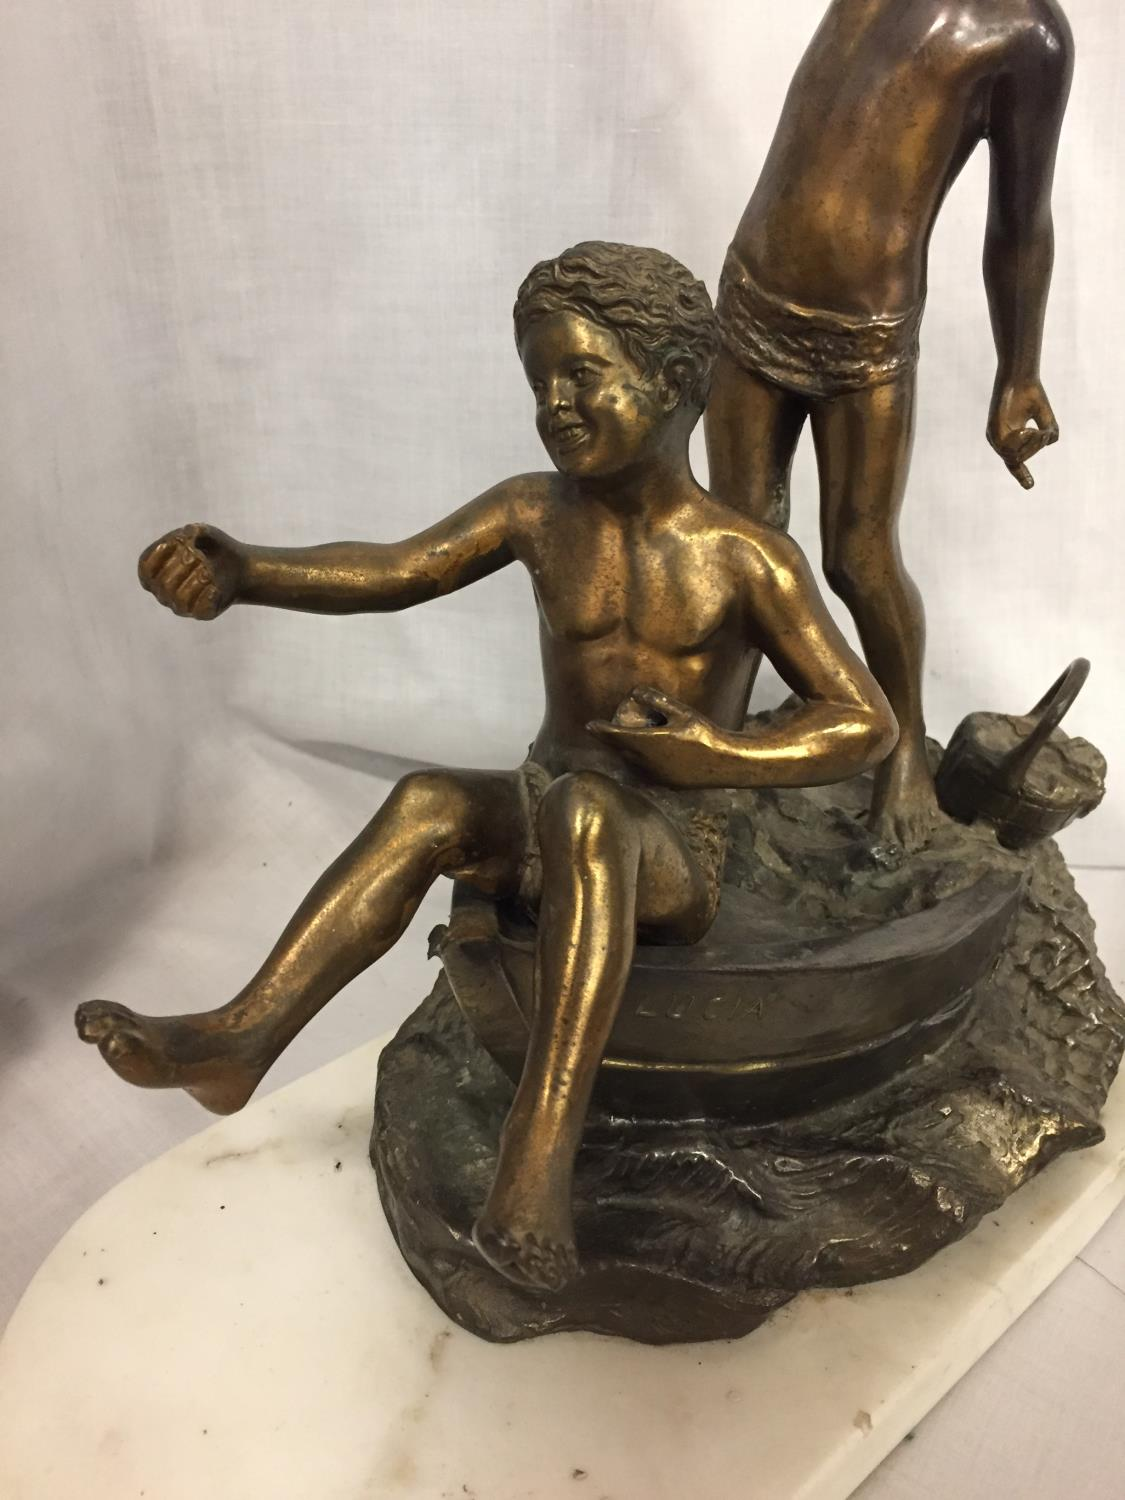 A SCULPTURE OF TWO BOYS IN A ROWING BOAT ON A MARBLE BASE - Image 4 of 4